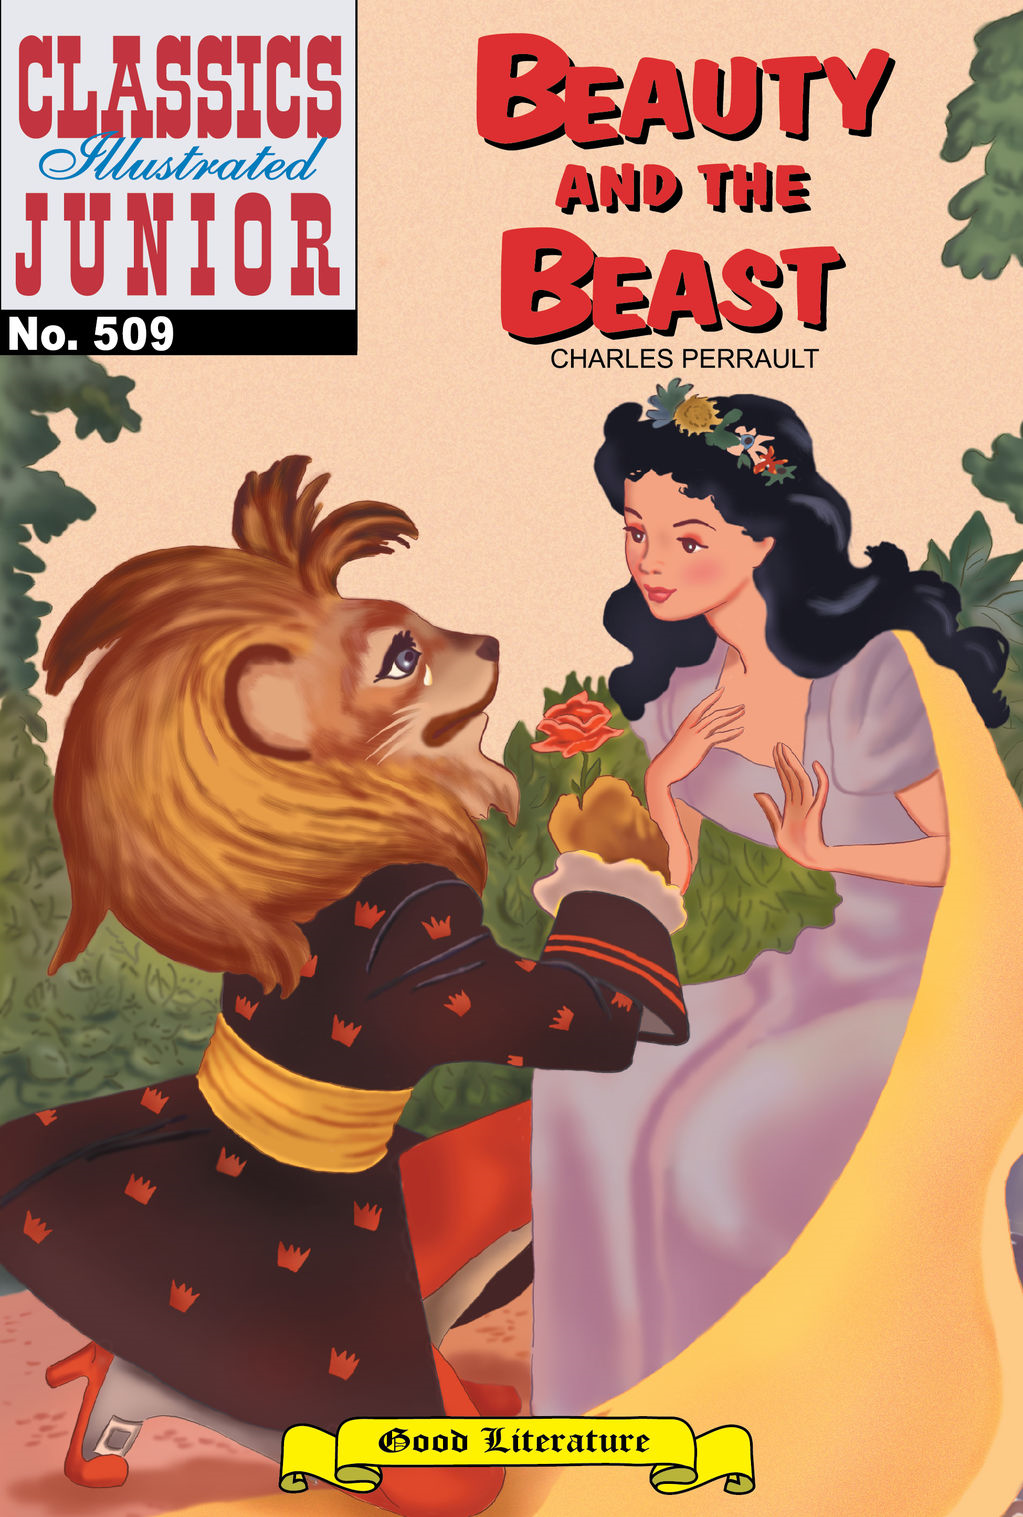 Beauty and the Beast - Classics Illustrated Junior #509